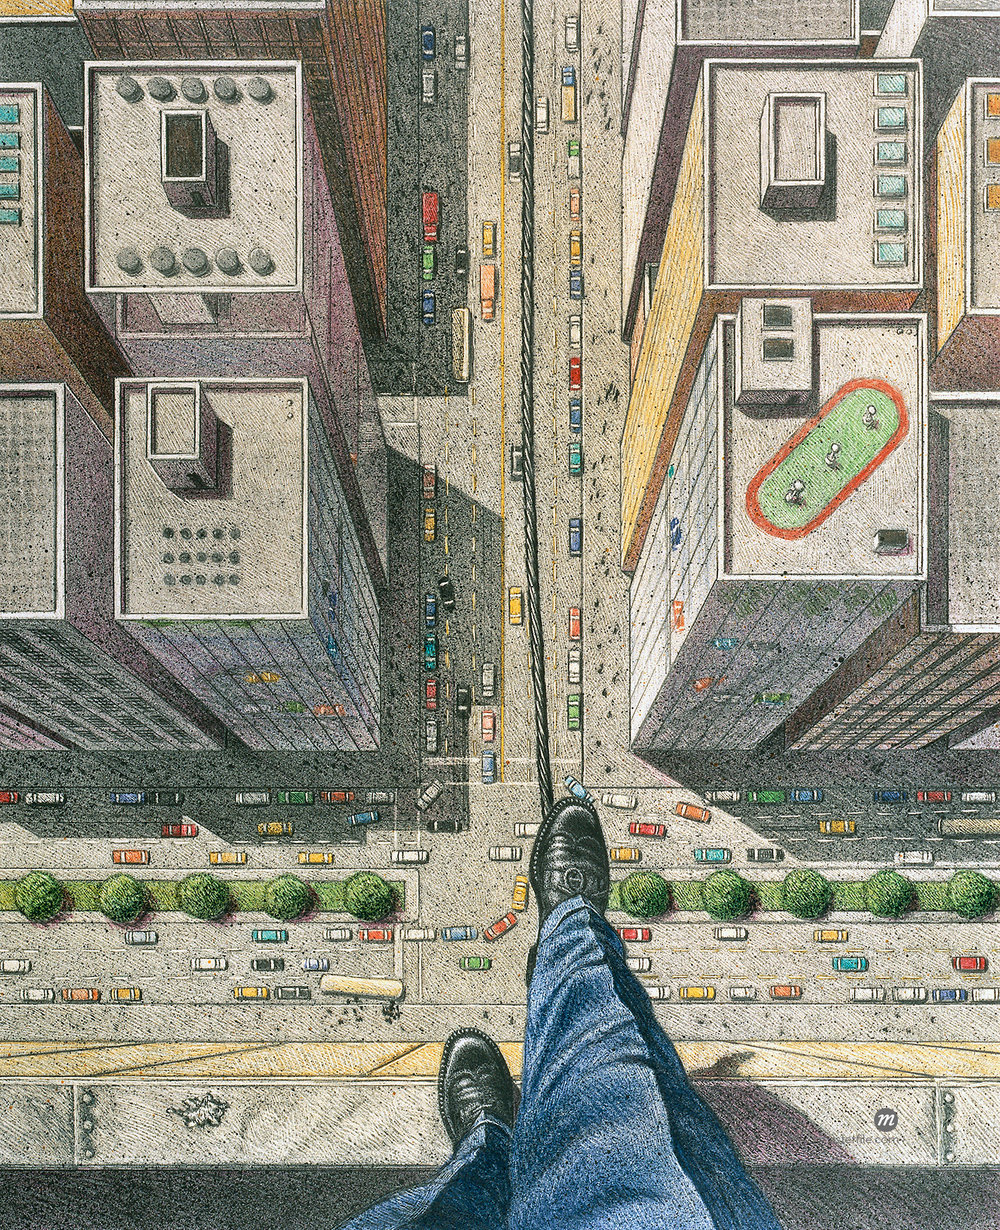 Businessman Walking Tightrope over City Streets (Illustration) © Thomas Dannenberg / Masterfile